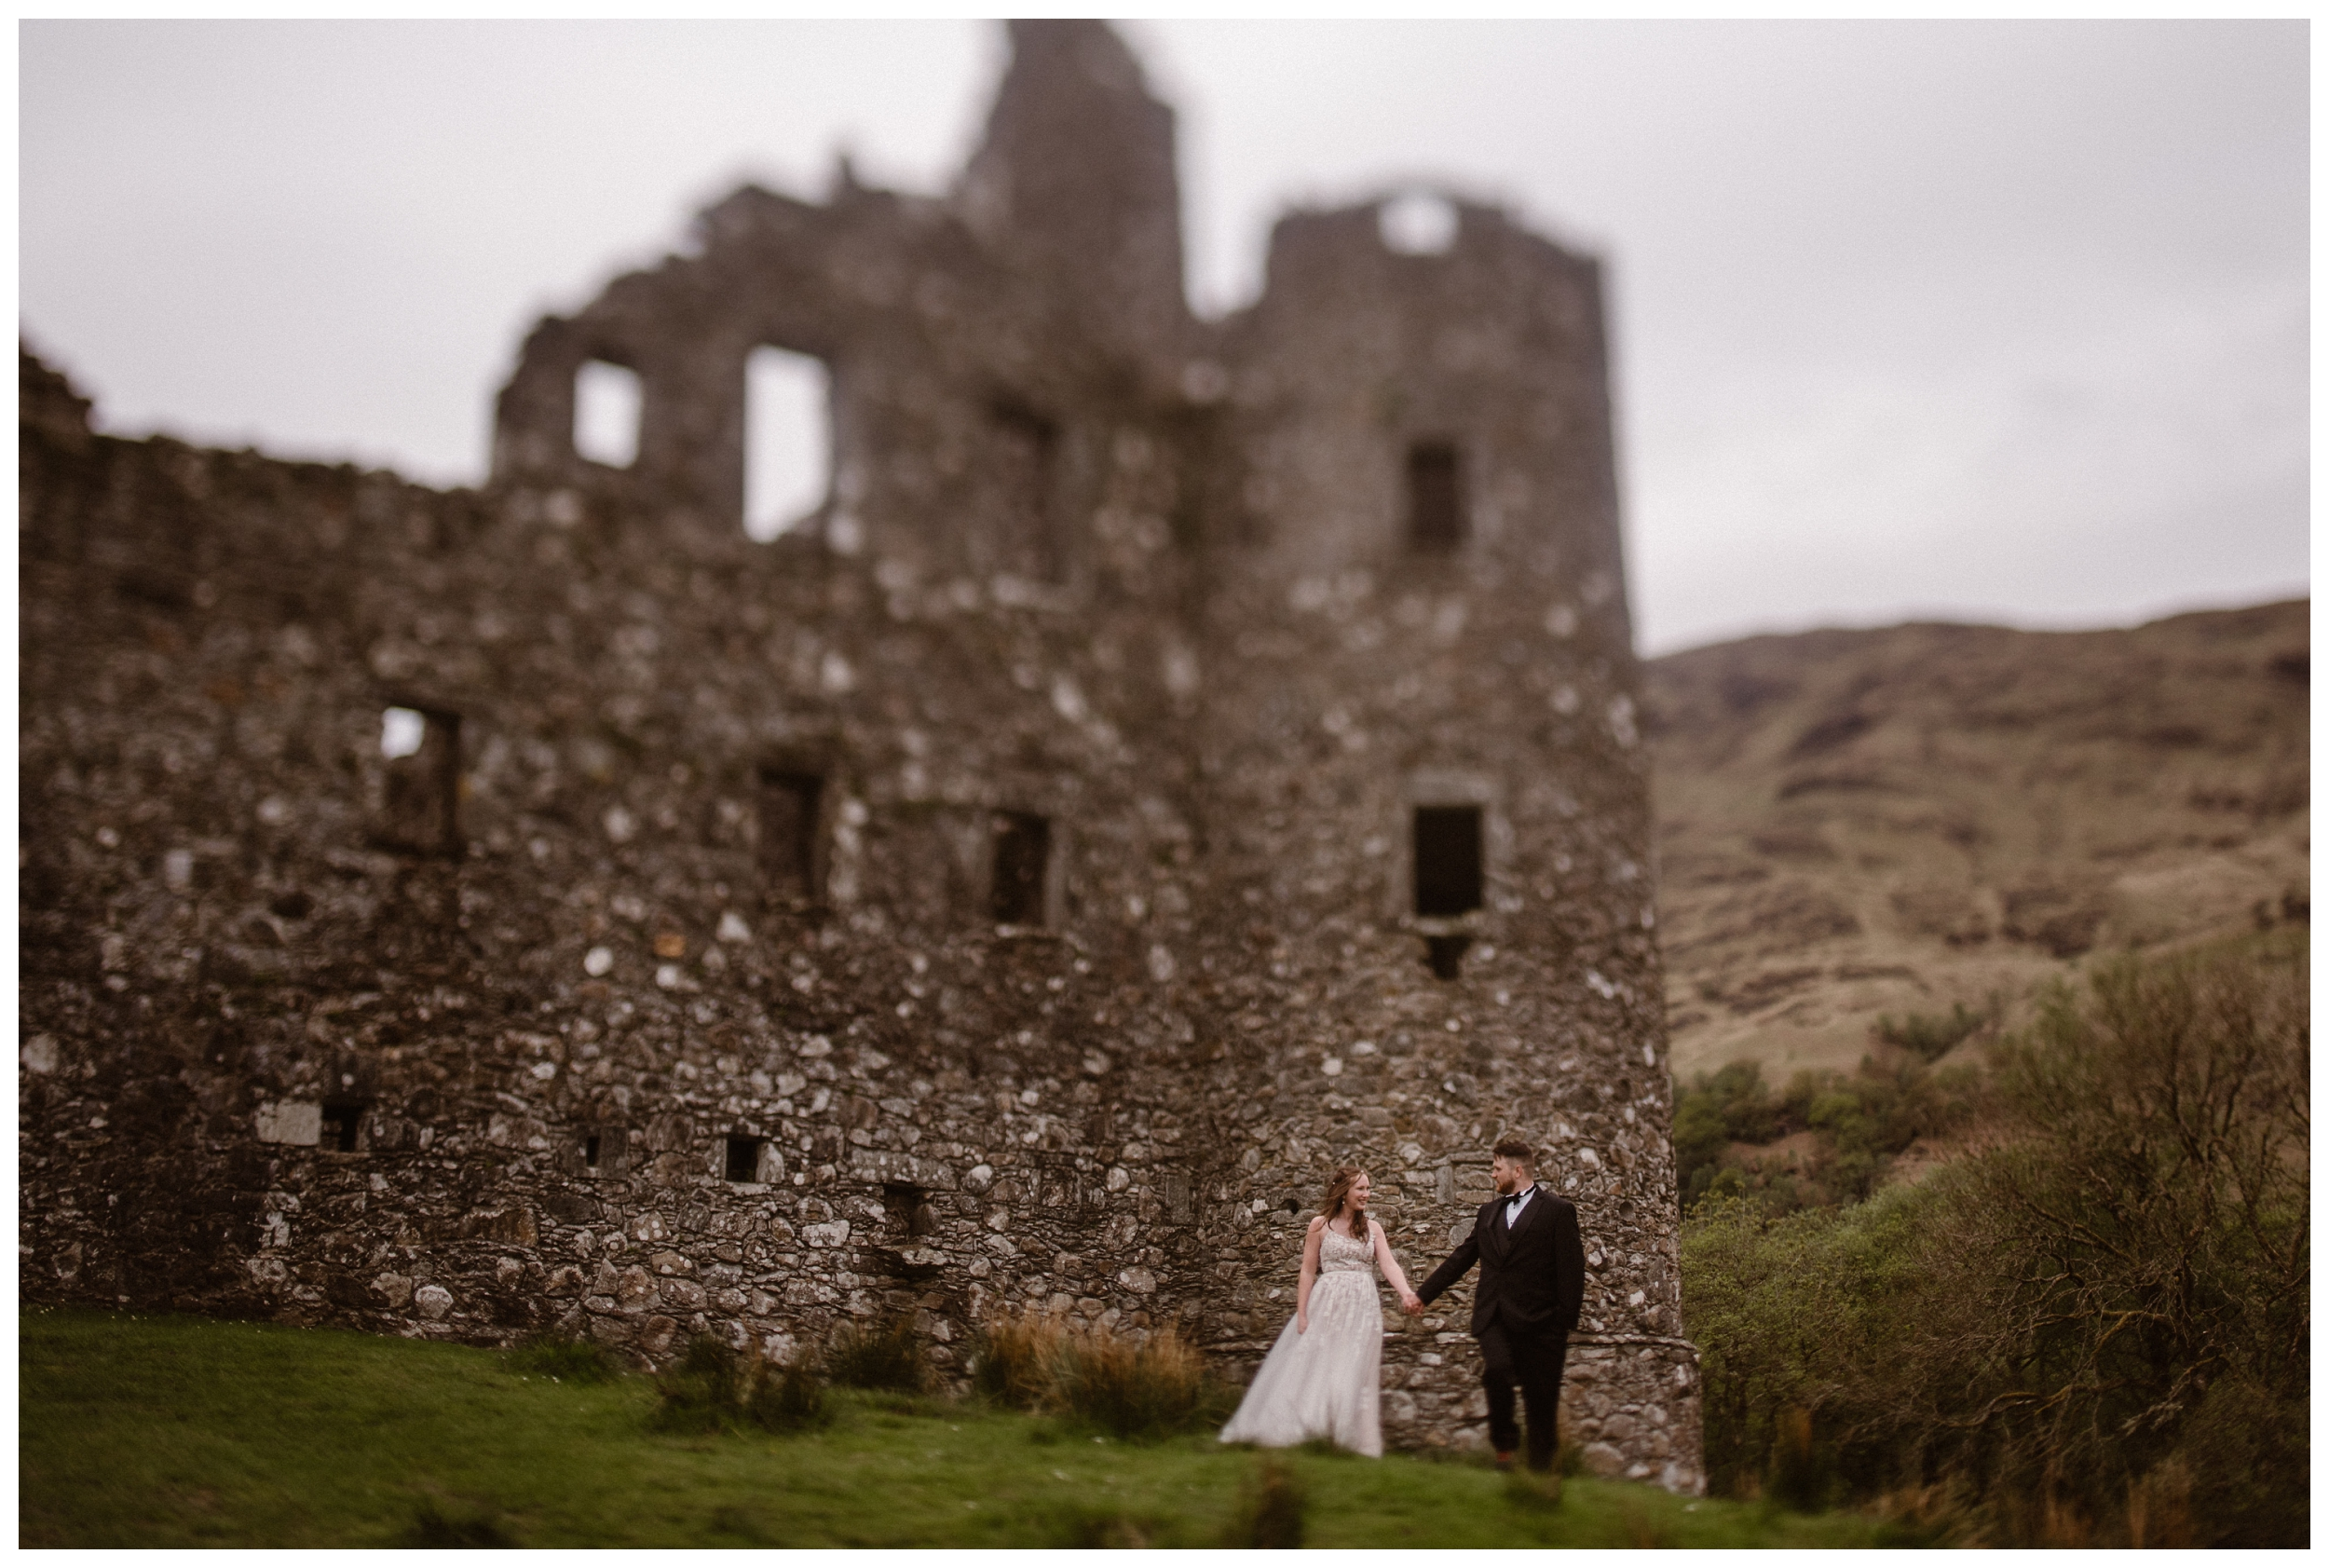 Elissa and Daniel stand at the base of Kilchurn Castle outside Loch Lomond & The Trossachs National Park in the Scottish Highlands before their destination adventure elopement. Photo by Maddie Mae, Adventure Instead.